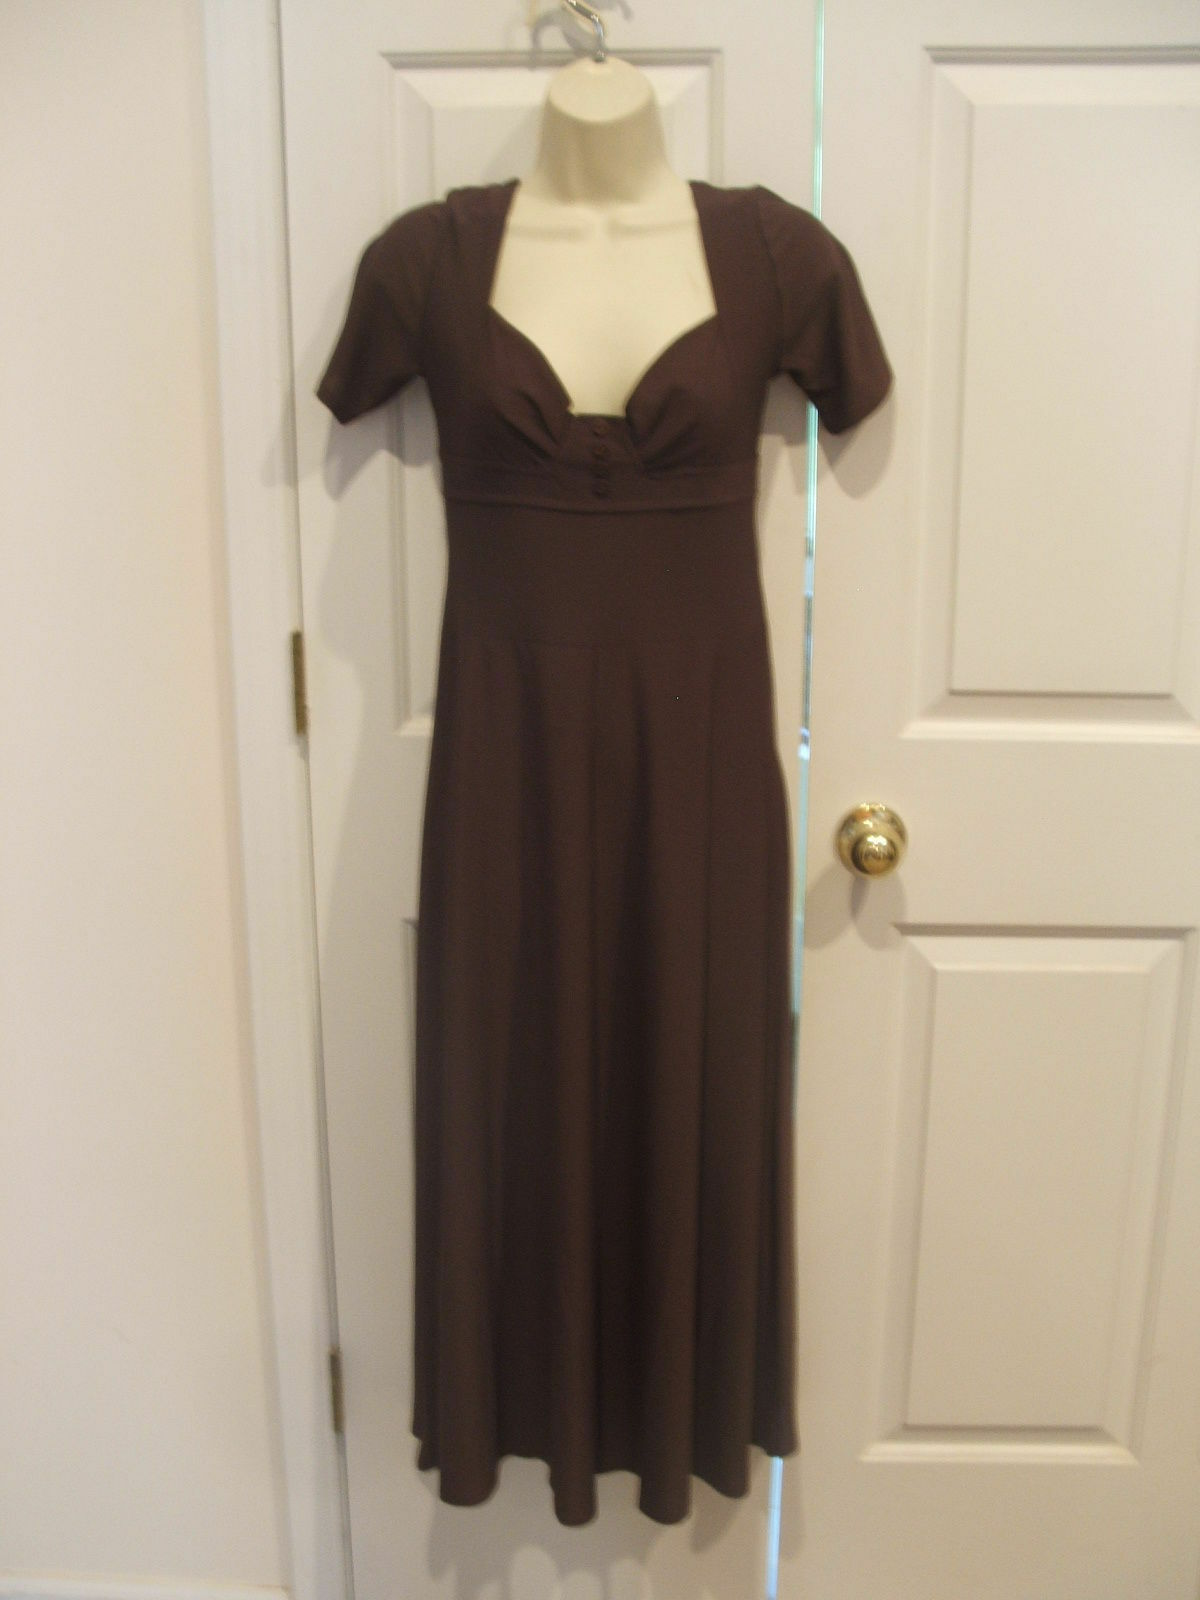 NEW in pkg brown Ocassion maxi Dress size 4